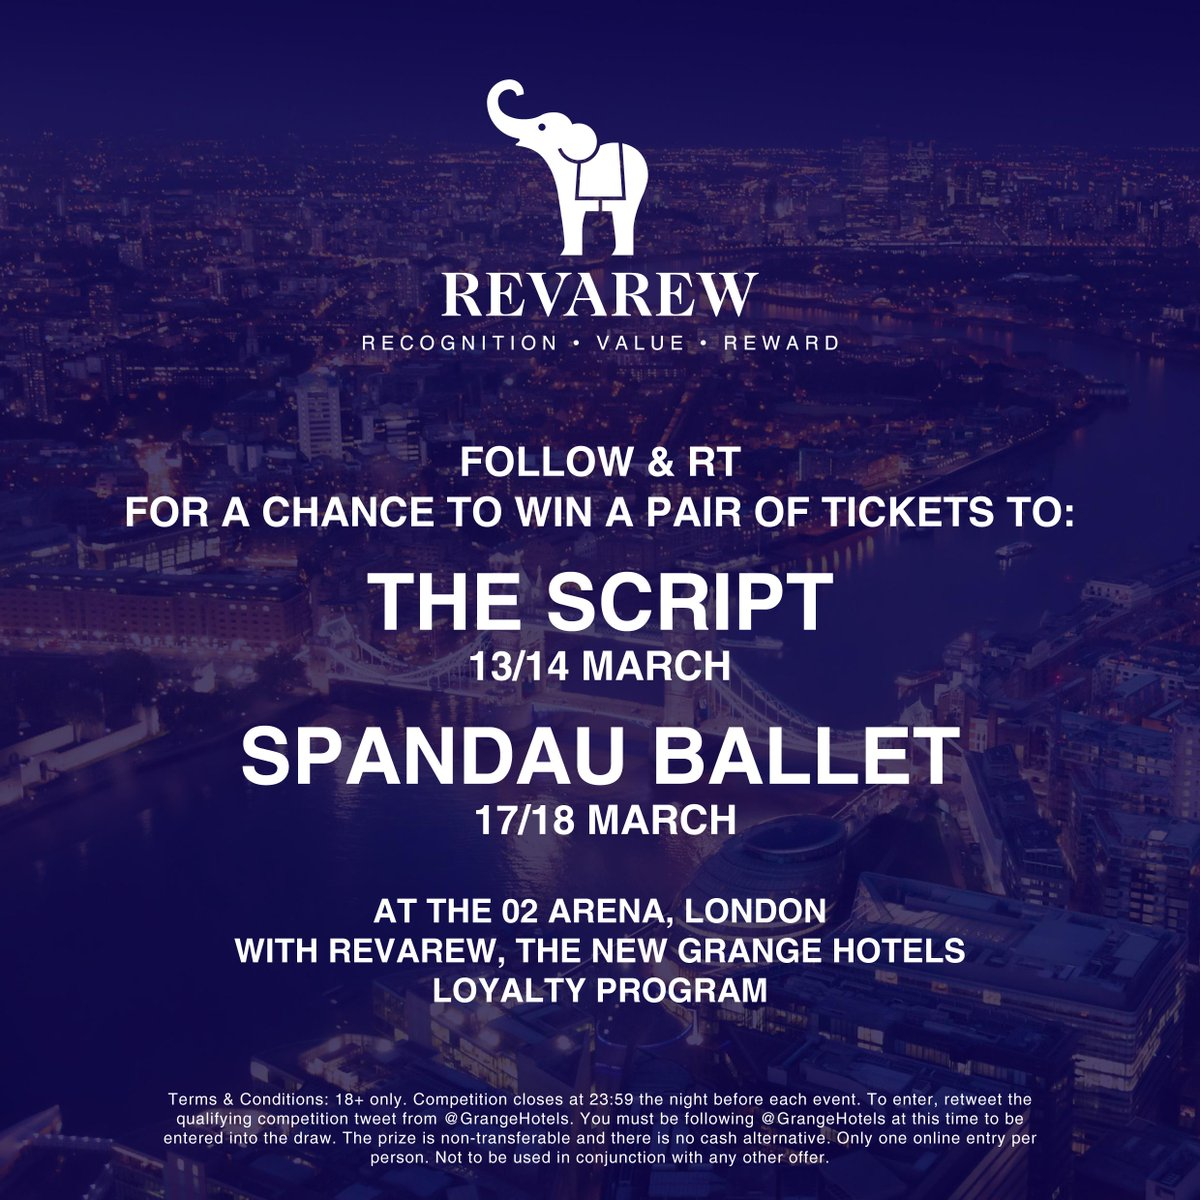 This is your chance to WIN tickets for @thescript and @SpandauBallet at @TheO2 with our new loyalty program #Revarew http://t.co/6RZ1f5XdXS